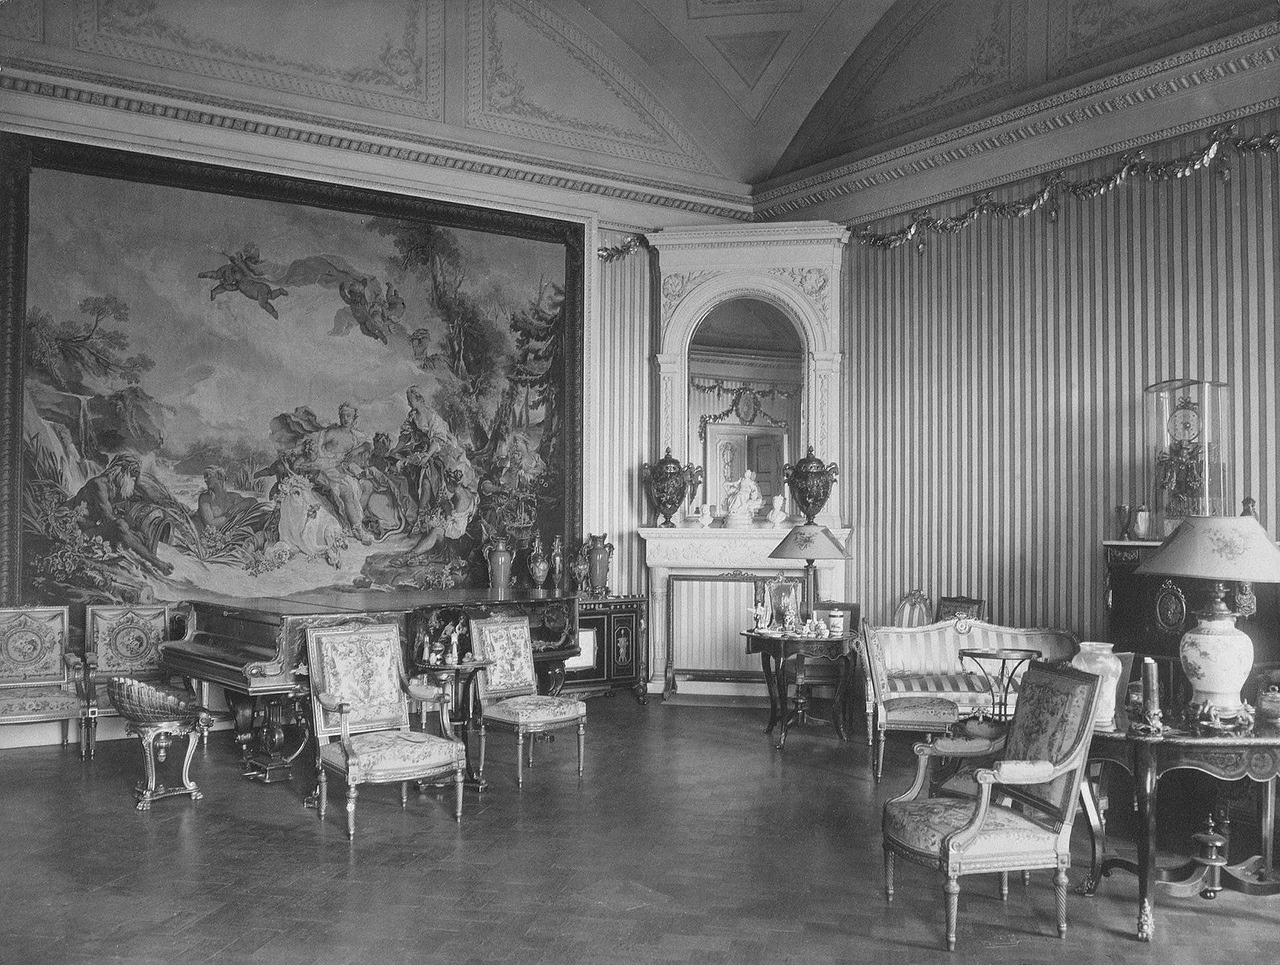 From October 1915 to November 1917, a hospital functioned in the Winter Palace. / Silver guest room.